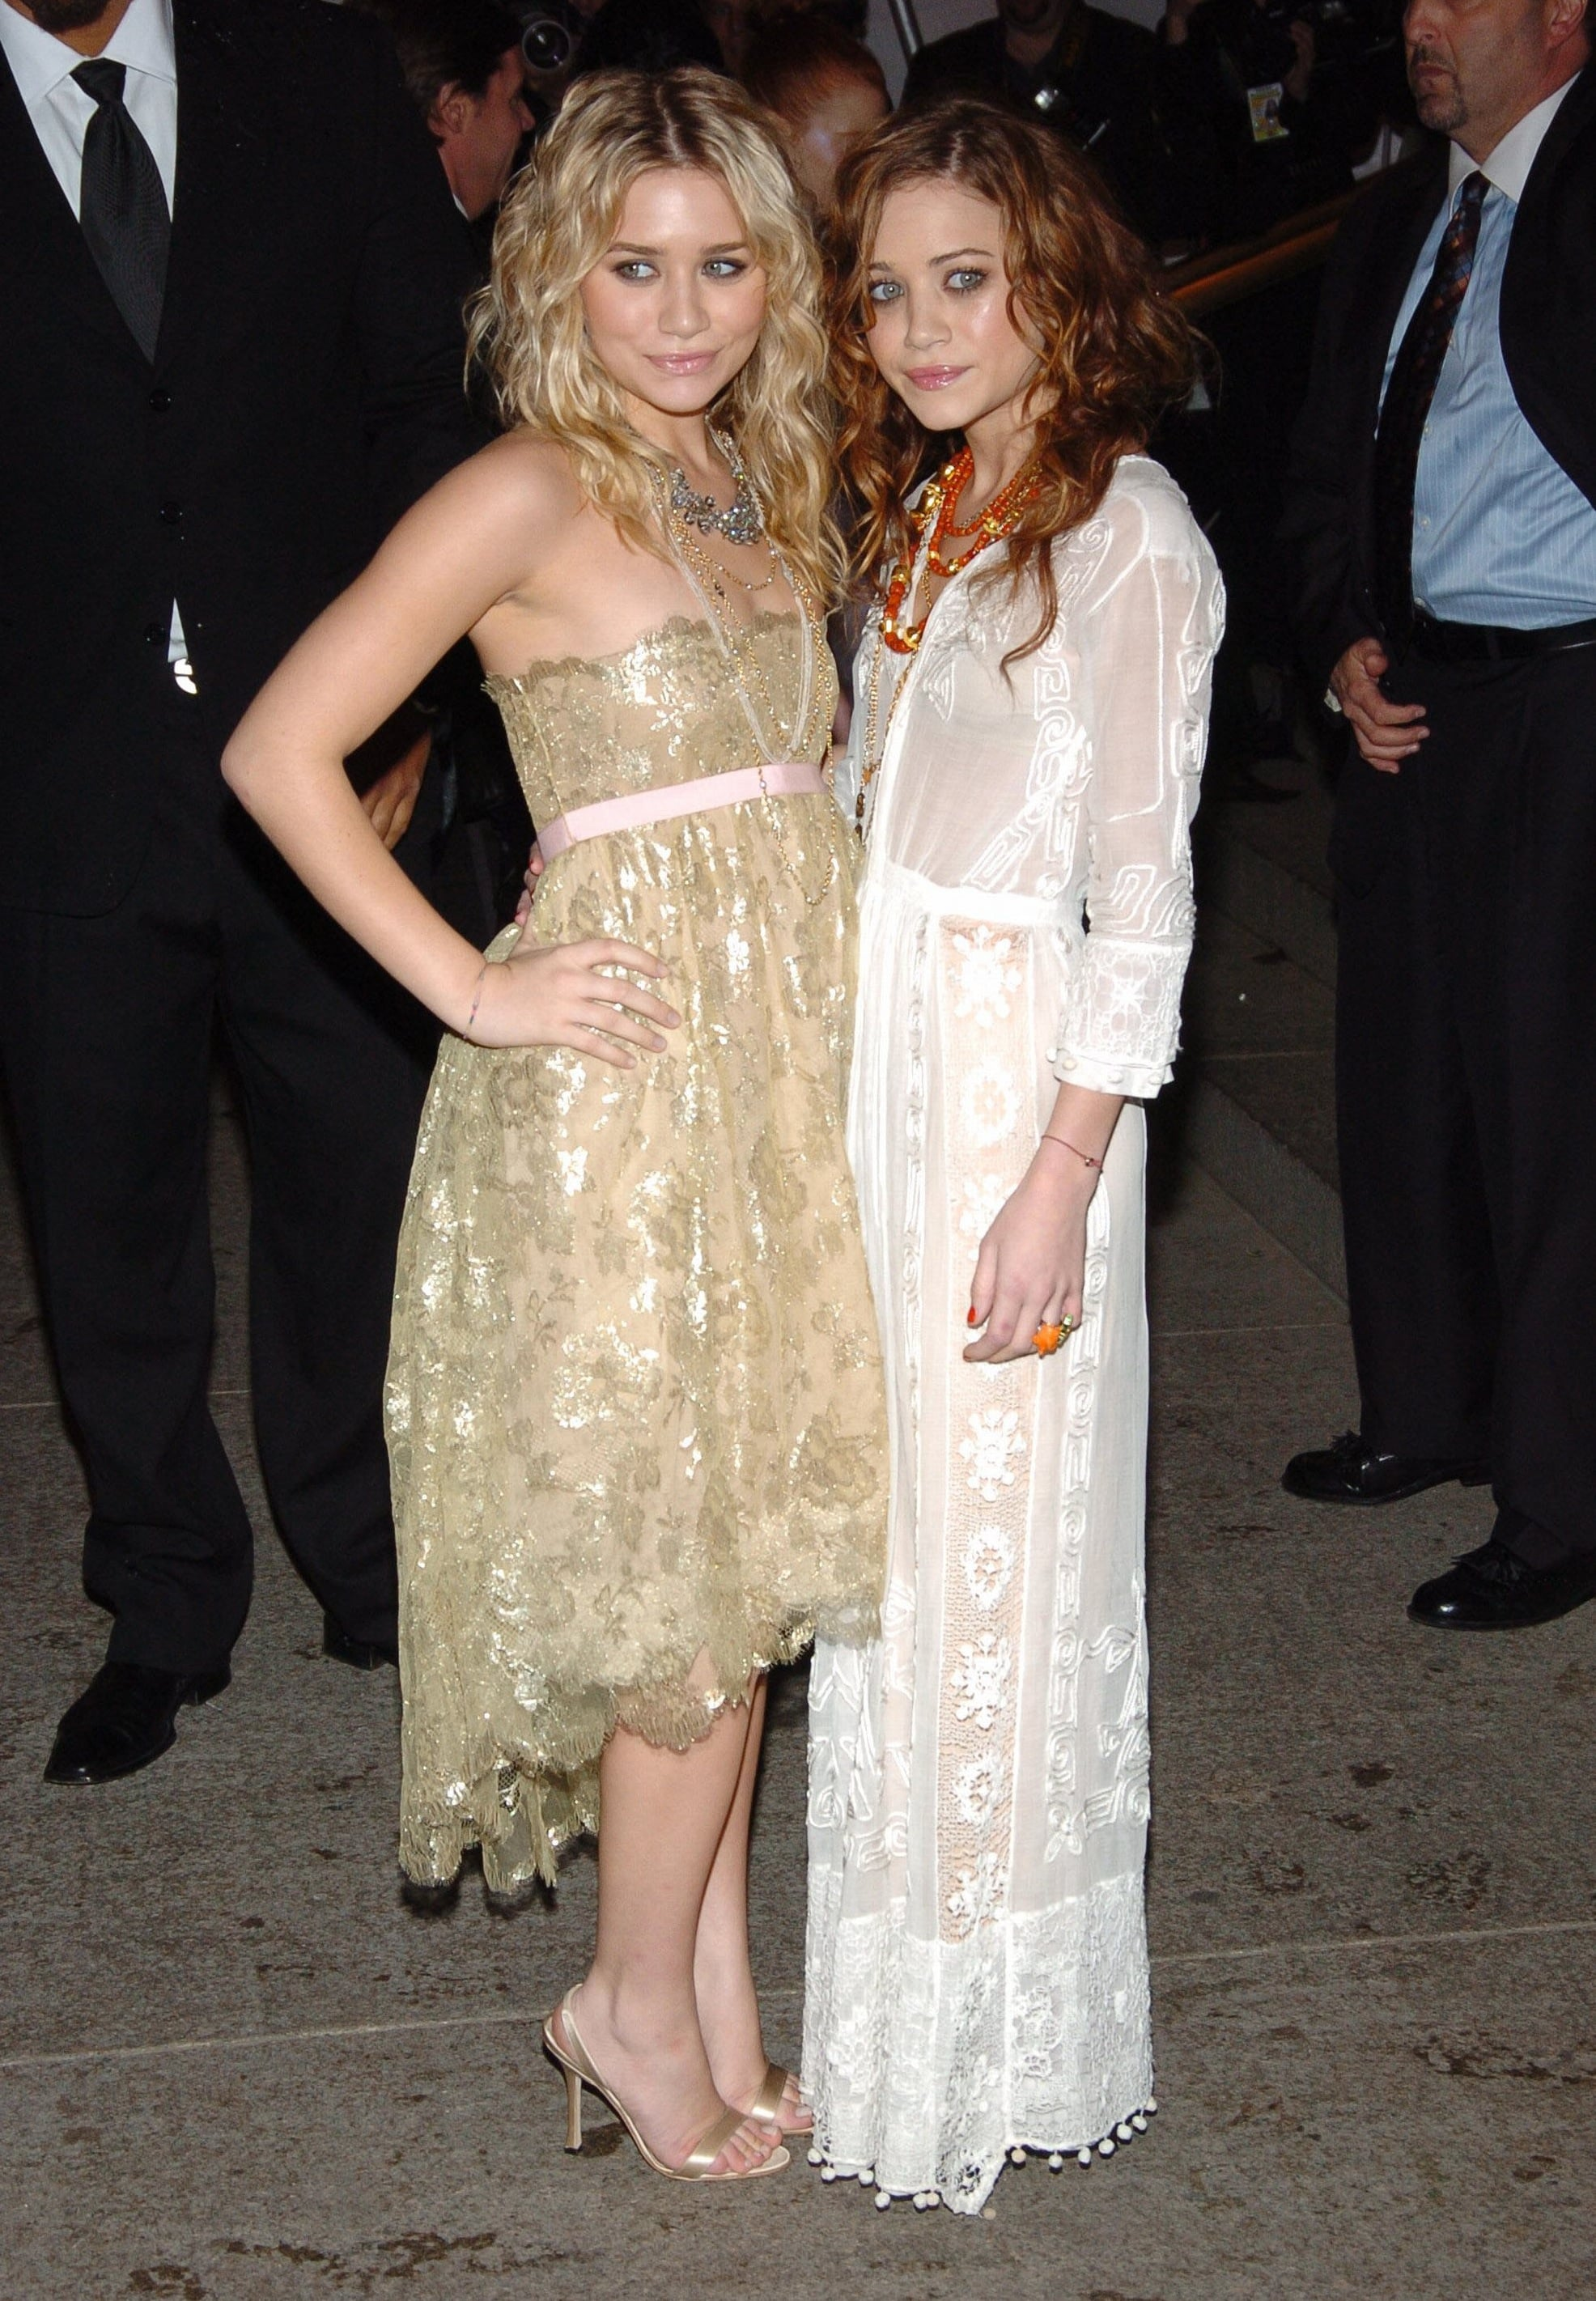 Twinning combo: Mary-Kate and Ashley chose lovely lace numbers for the Chanel Costume Institute Gala opening in May 2005.  Ashley posed in a shimmering strapless dress with foiled lace appliqués, satin sandals, and strands of statement necklaces.  Mary-Kate wowed in a floor-length lace gown, fiery curls, and layers of eclectic necklaces.